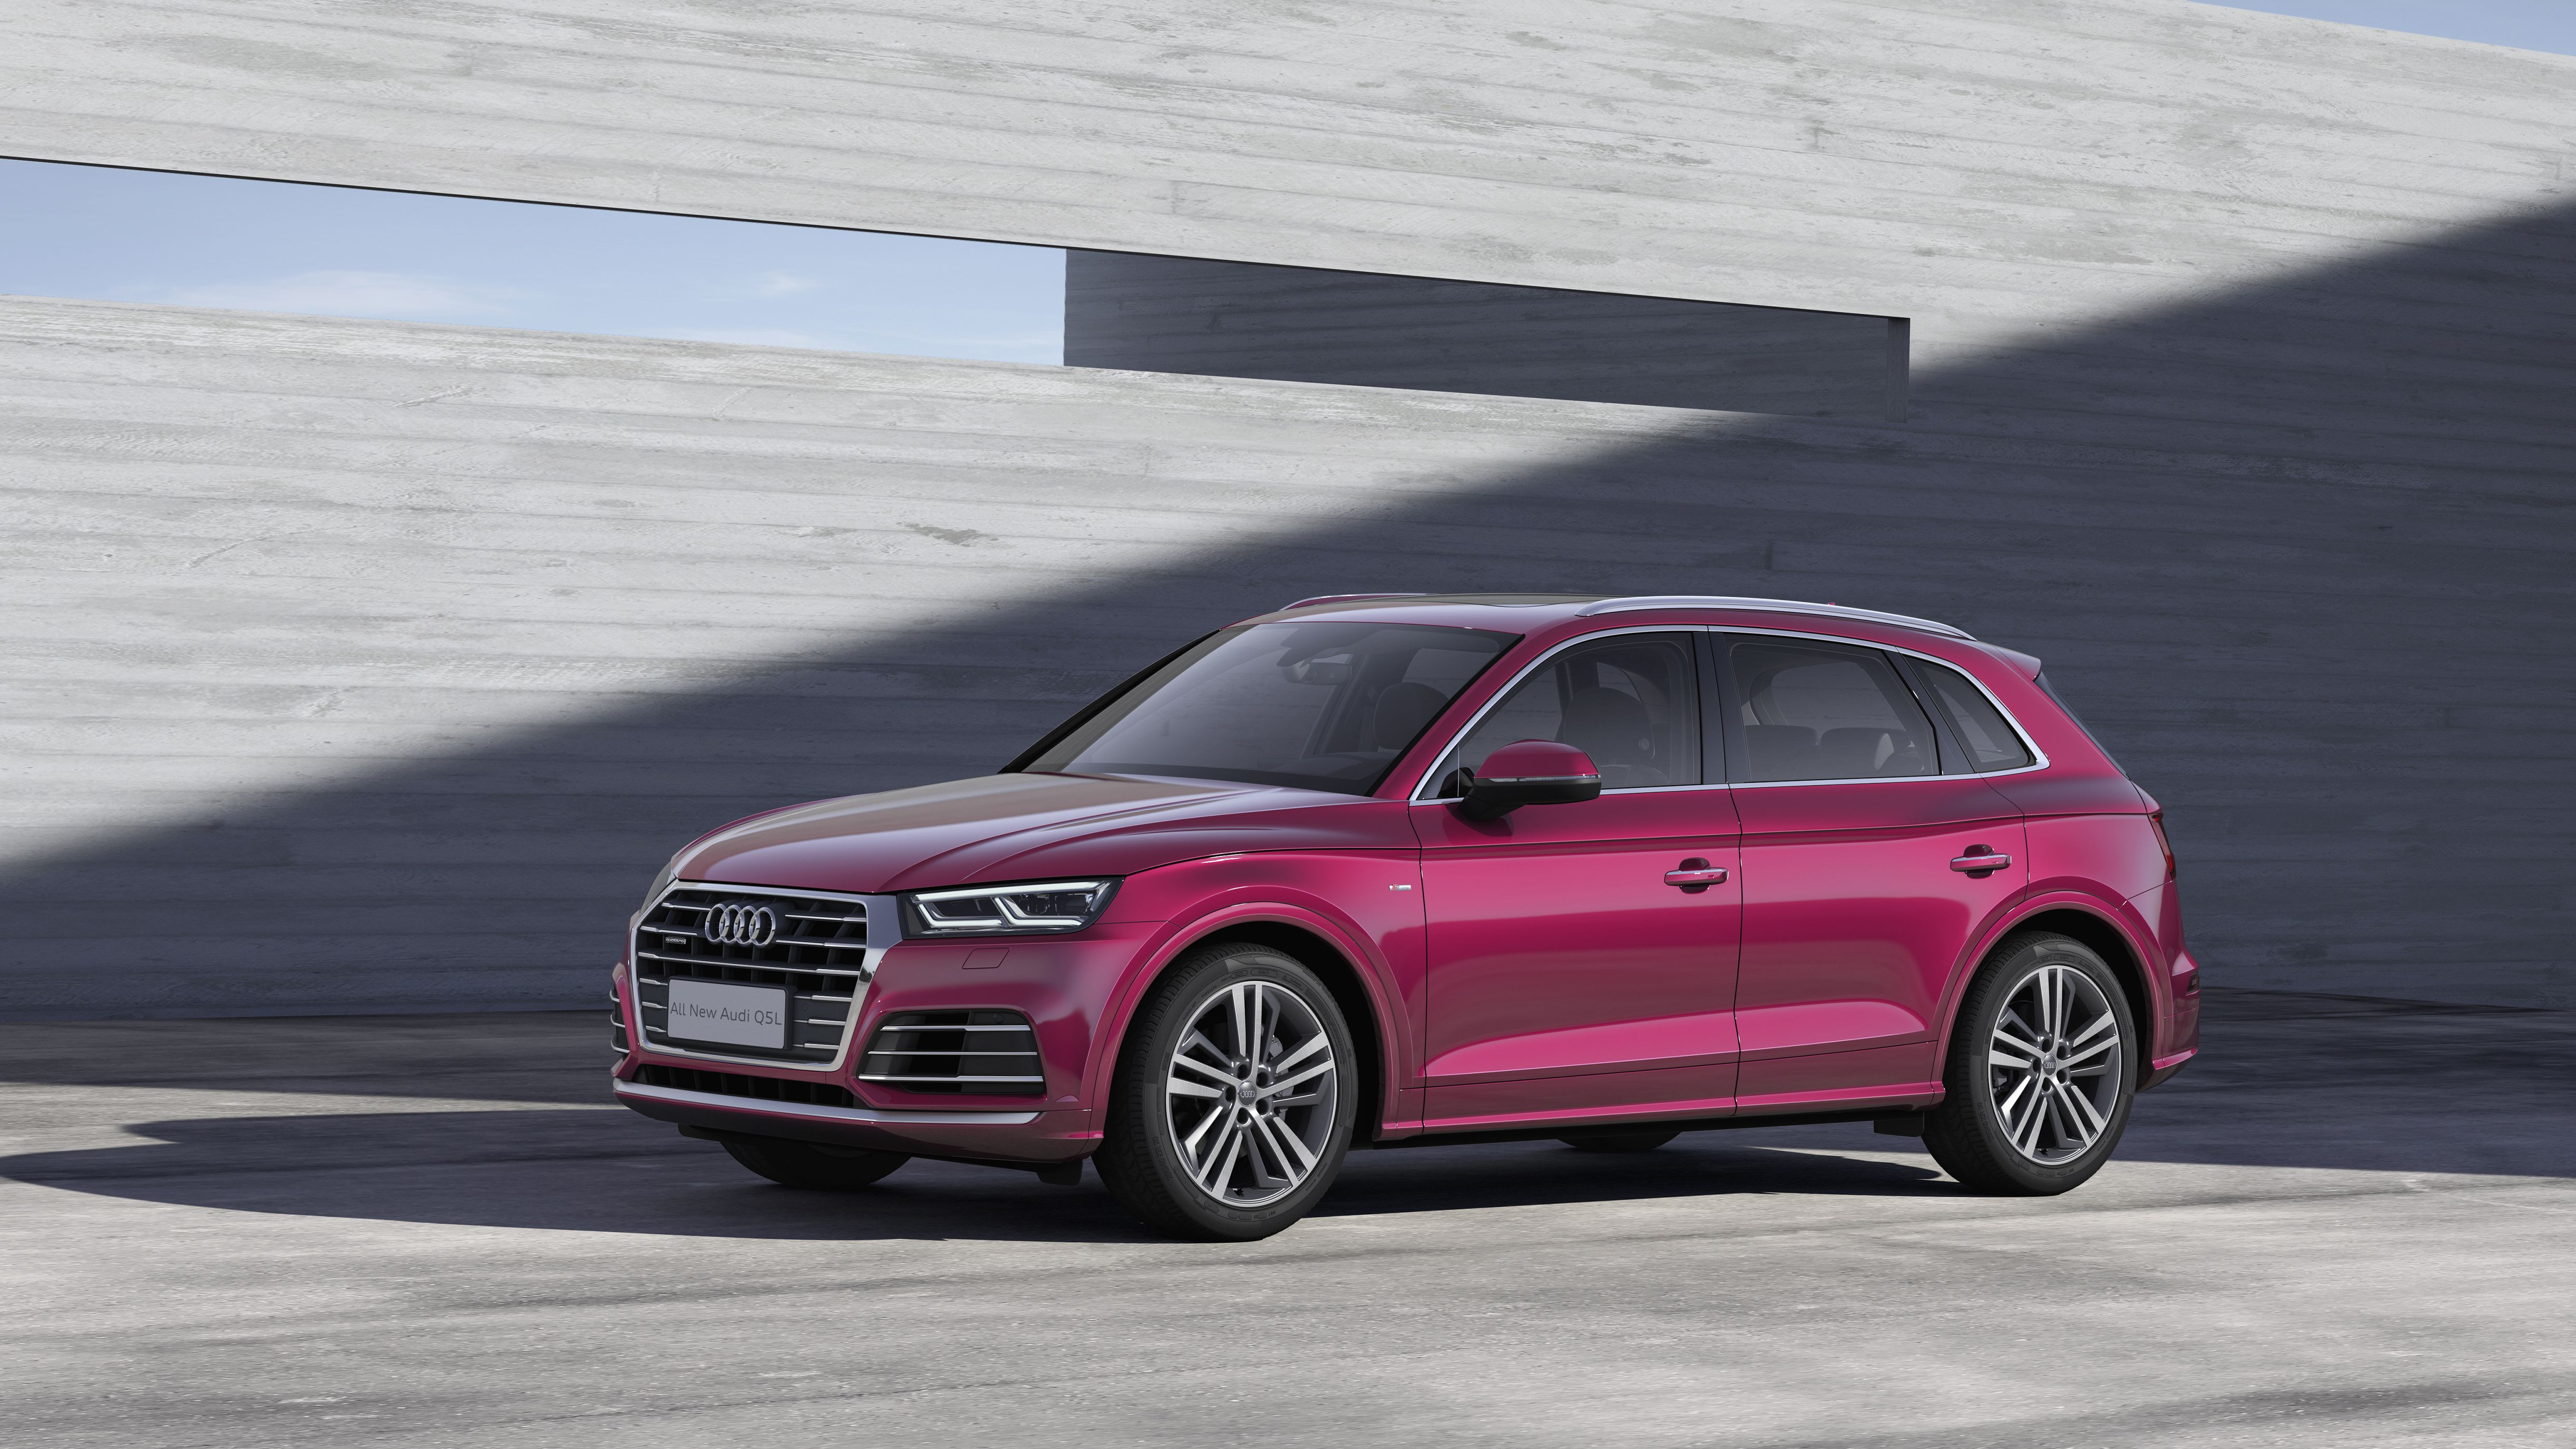 It S Not The Audi Q8 But The Q5 L Is Really Stretchy Top Speed Audi German Cars Cars